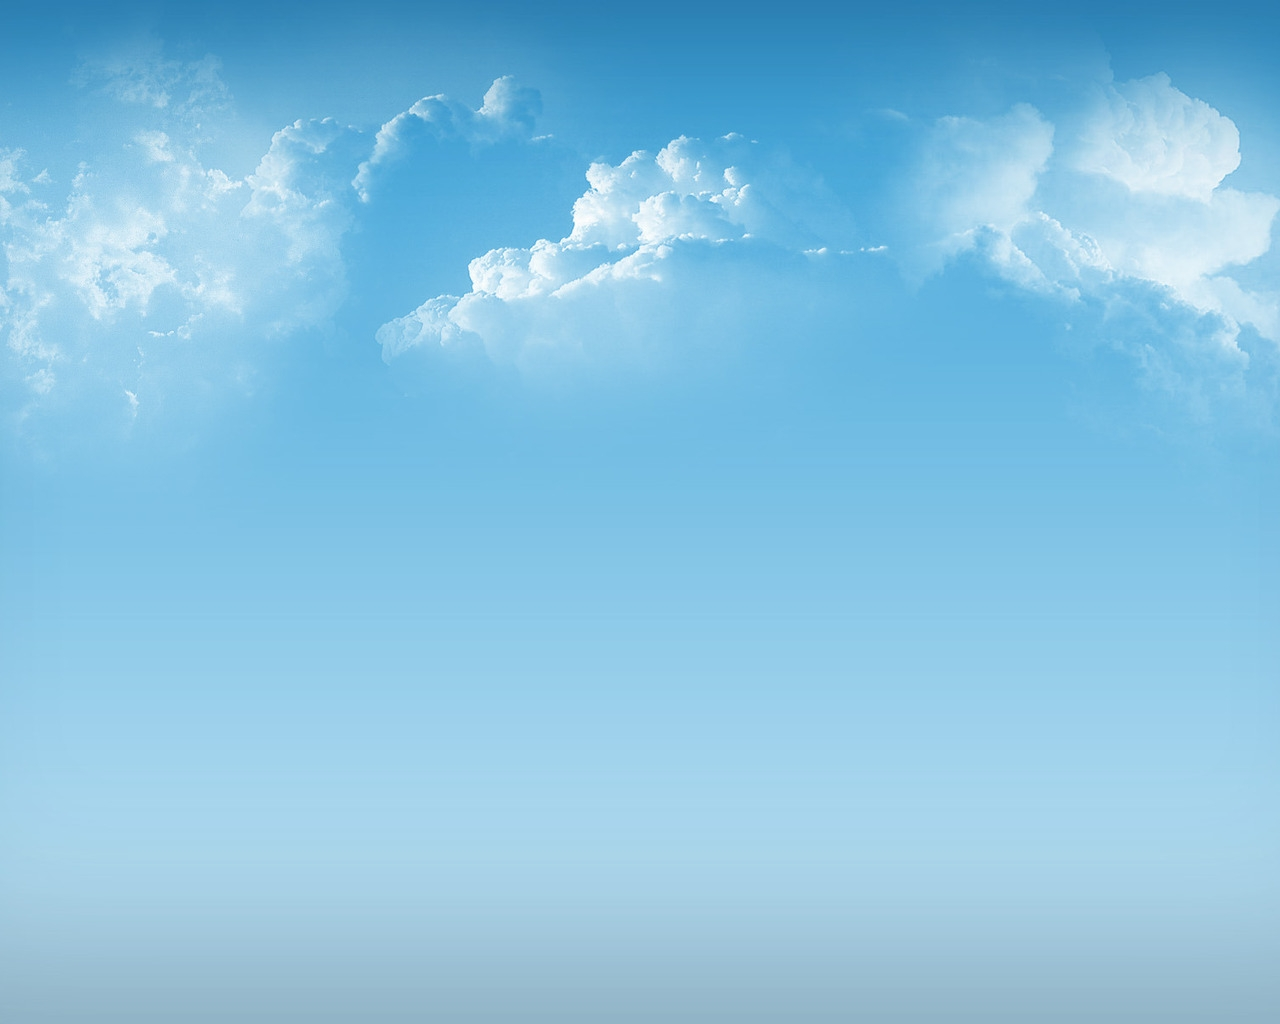 Simple Clouds for 1280 x 1024 resolution